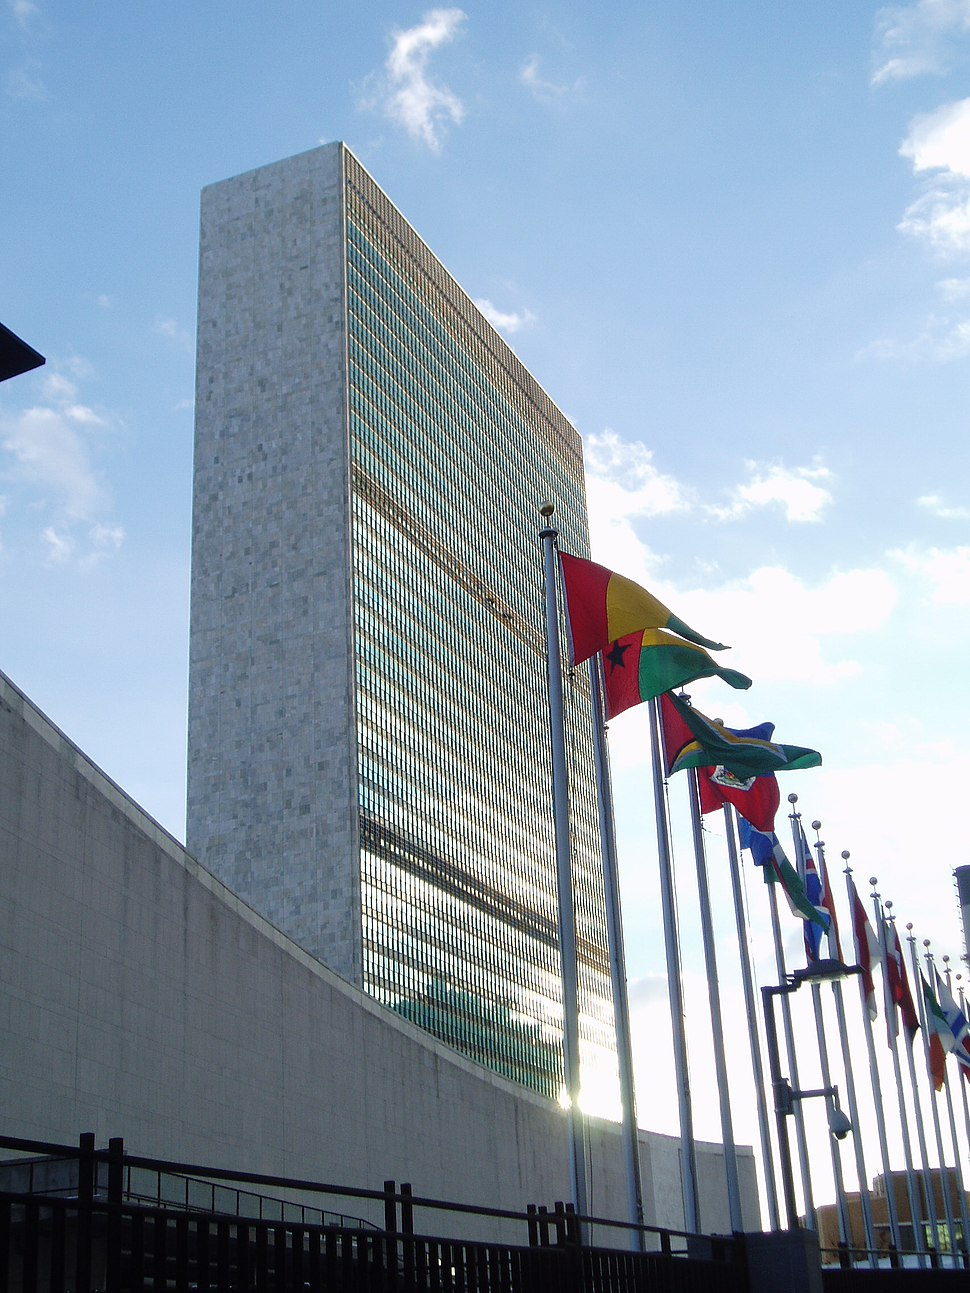 The United Nations Secretariat Building